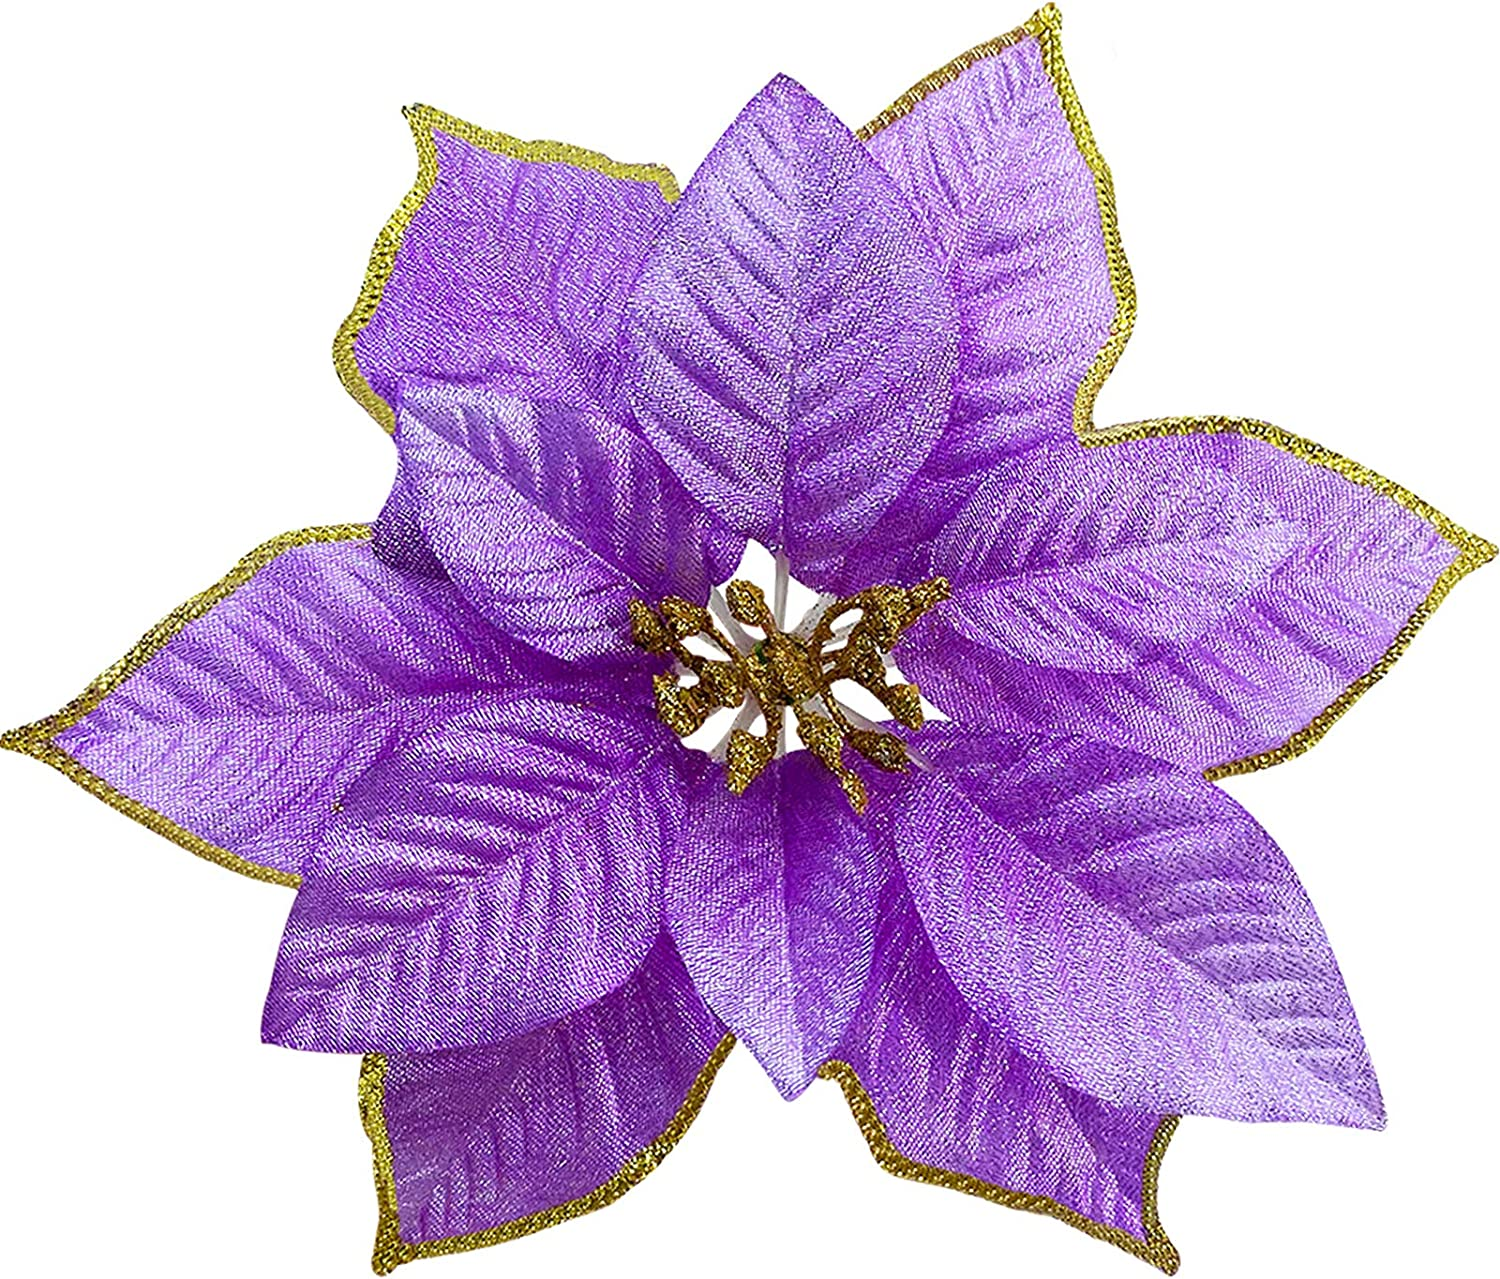 TURNMEON 8.7 Inch Giant Glitter Poinsettia, 12 Pcs Christmas Flowers Picks Decor Artificial Silk Flowers for Christmas Tree Ornaments Wreaths Garland Holiday Decoration (Purple)